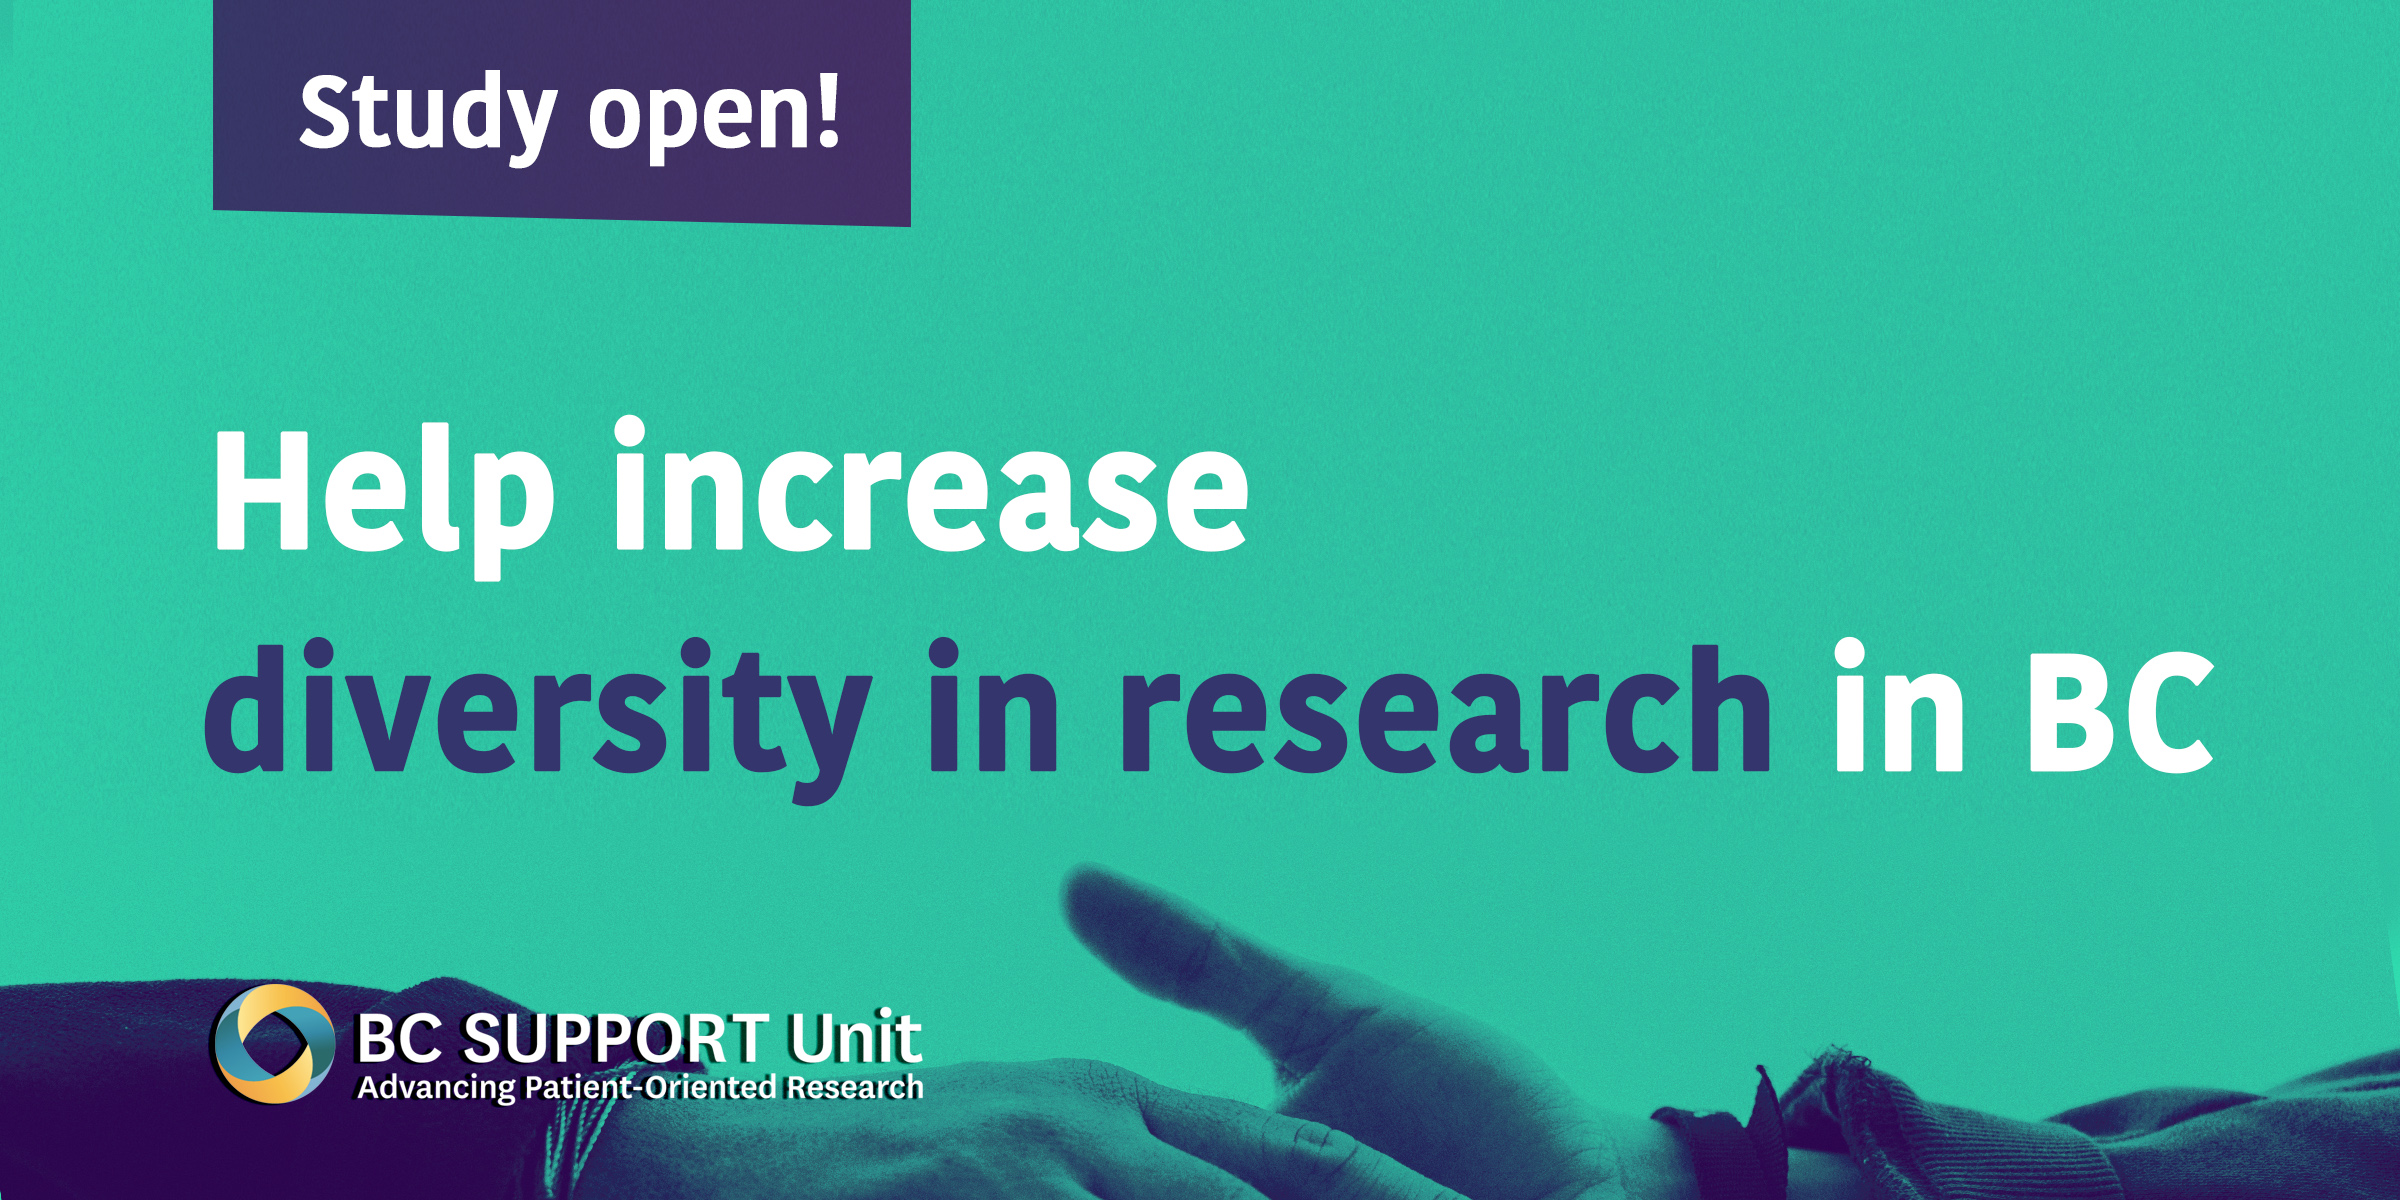 Call for health researchers: Help increase diversity in health research in BC!